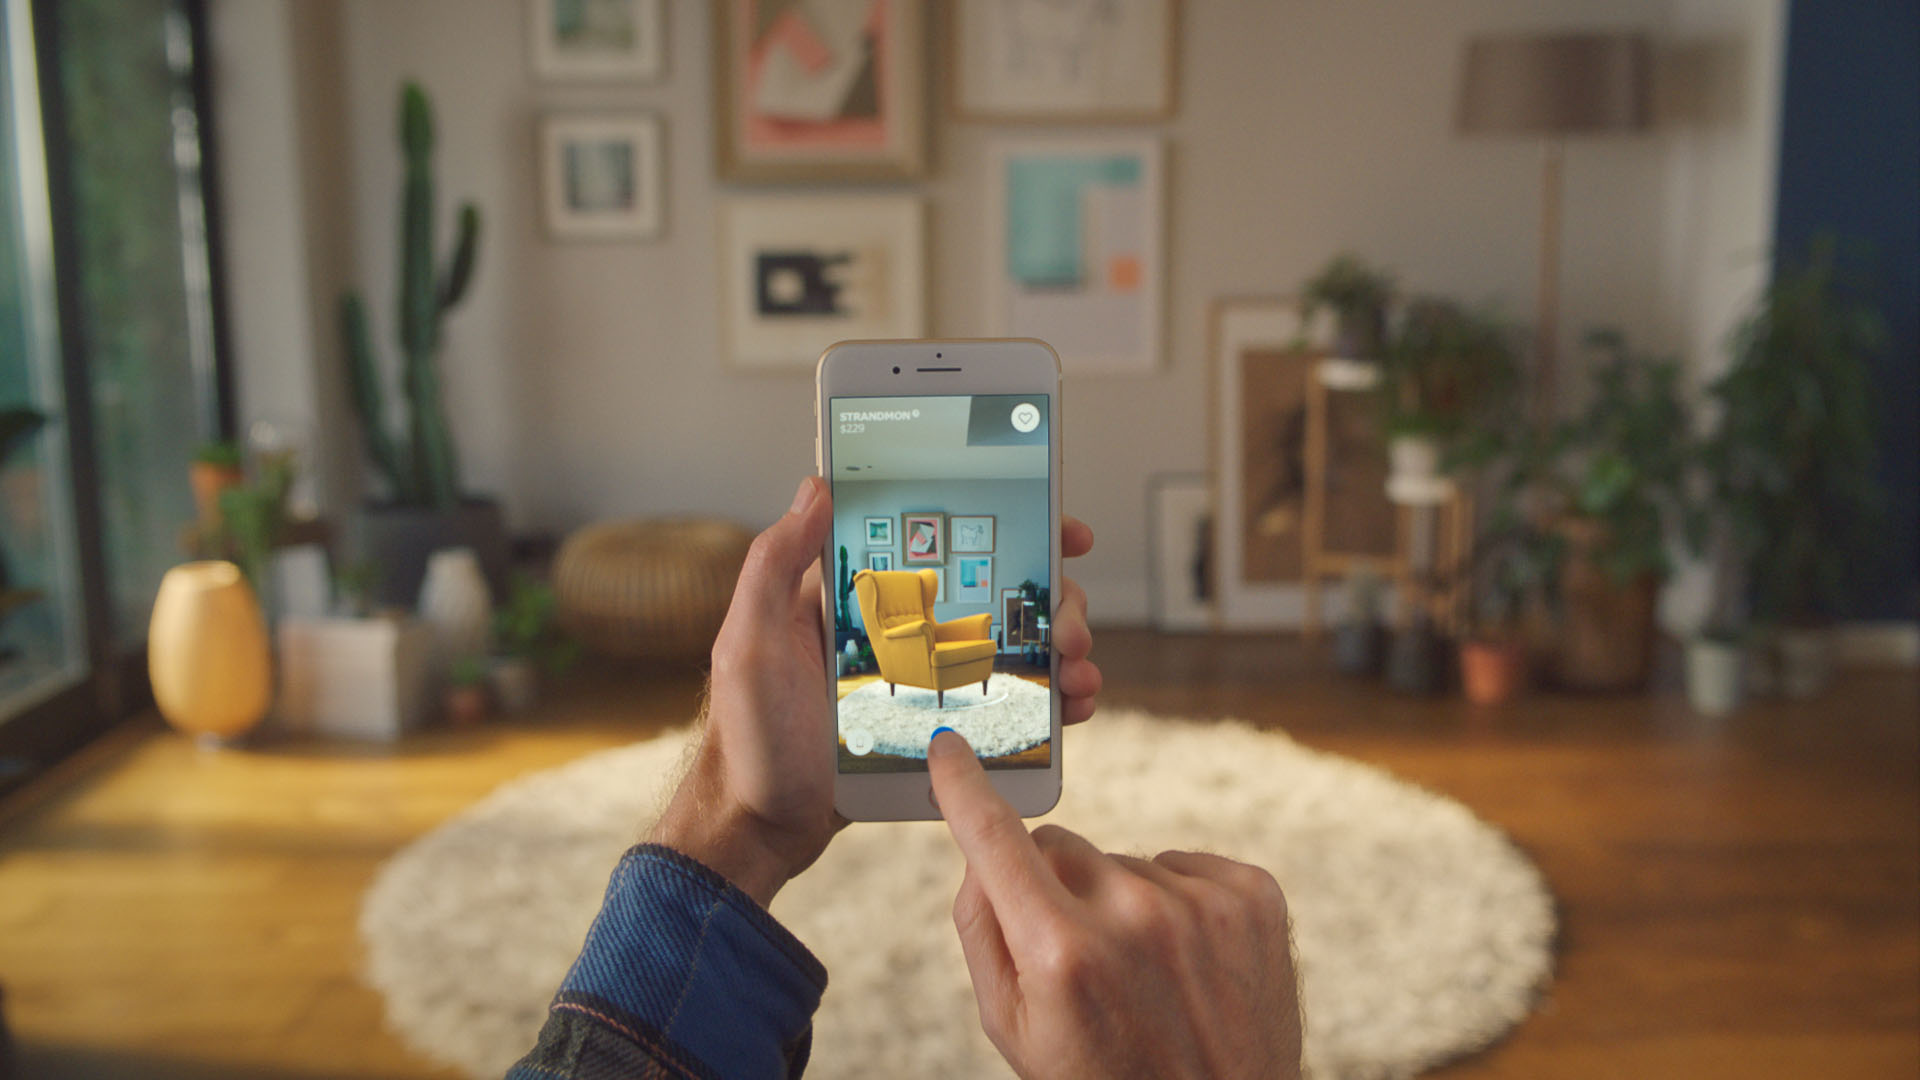 AI in apps like IKEA Place enables you to visually search for items you like and wait for the app to find the most matching products | The Augmented Human | SPACE10 | STIRworld